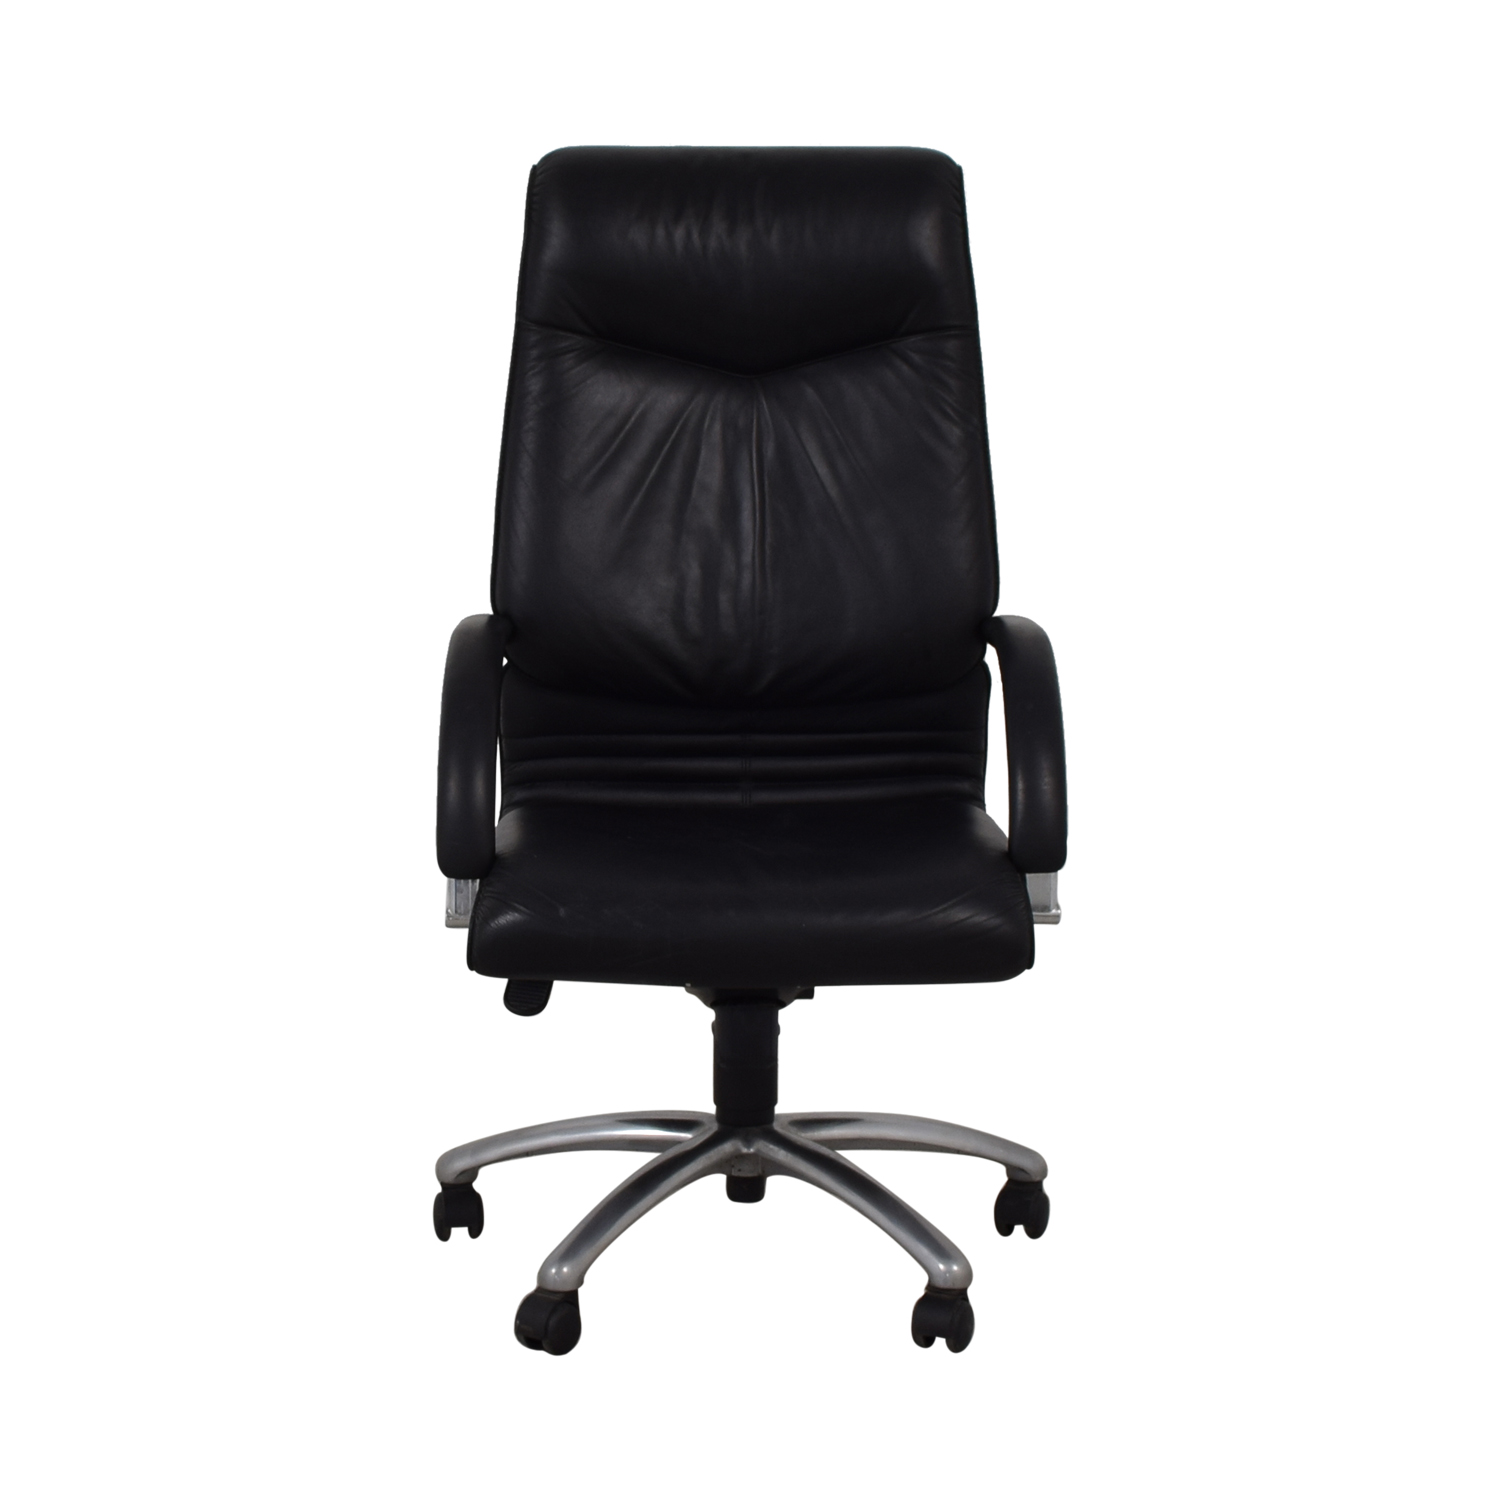 Leyform Elegant Executive Leather Office Chair second hand